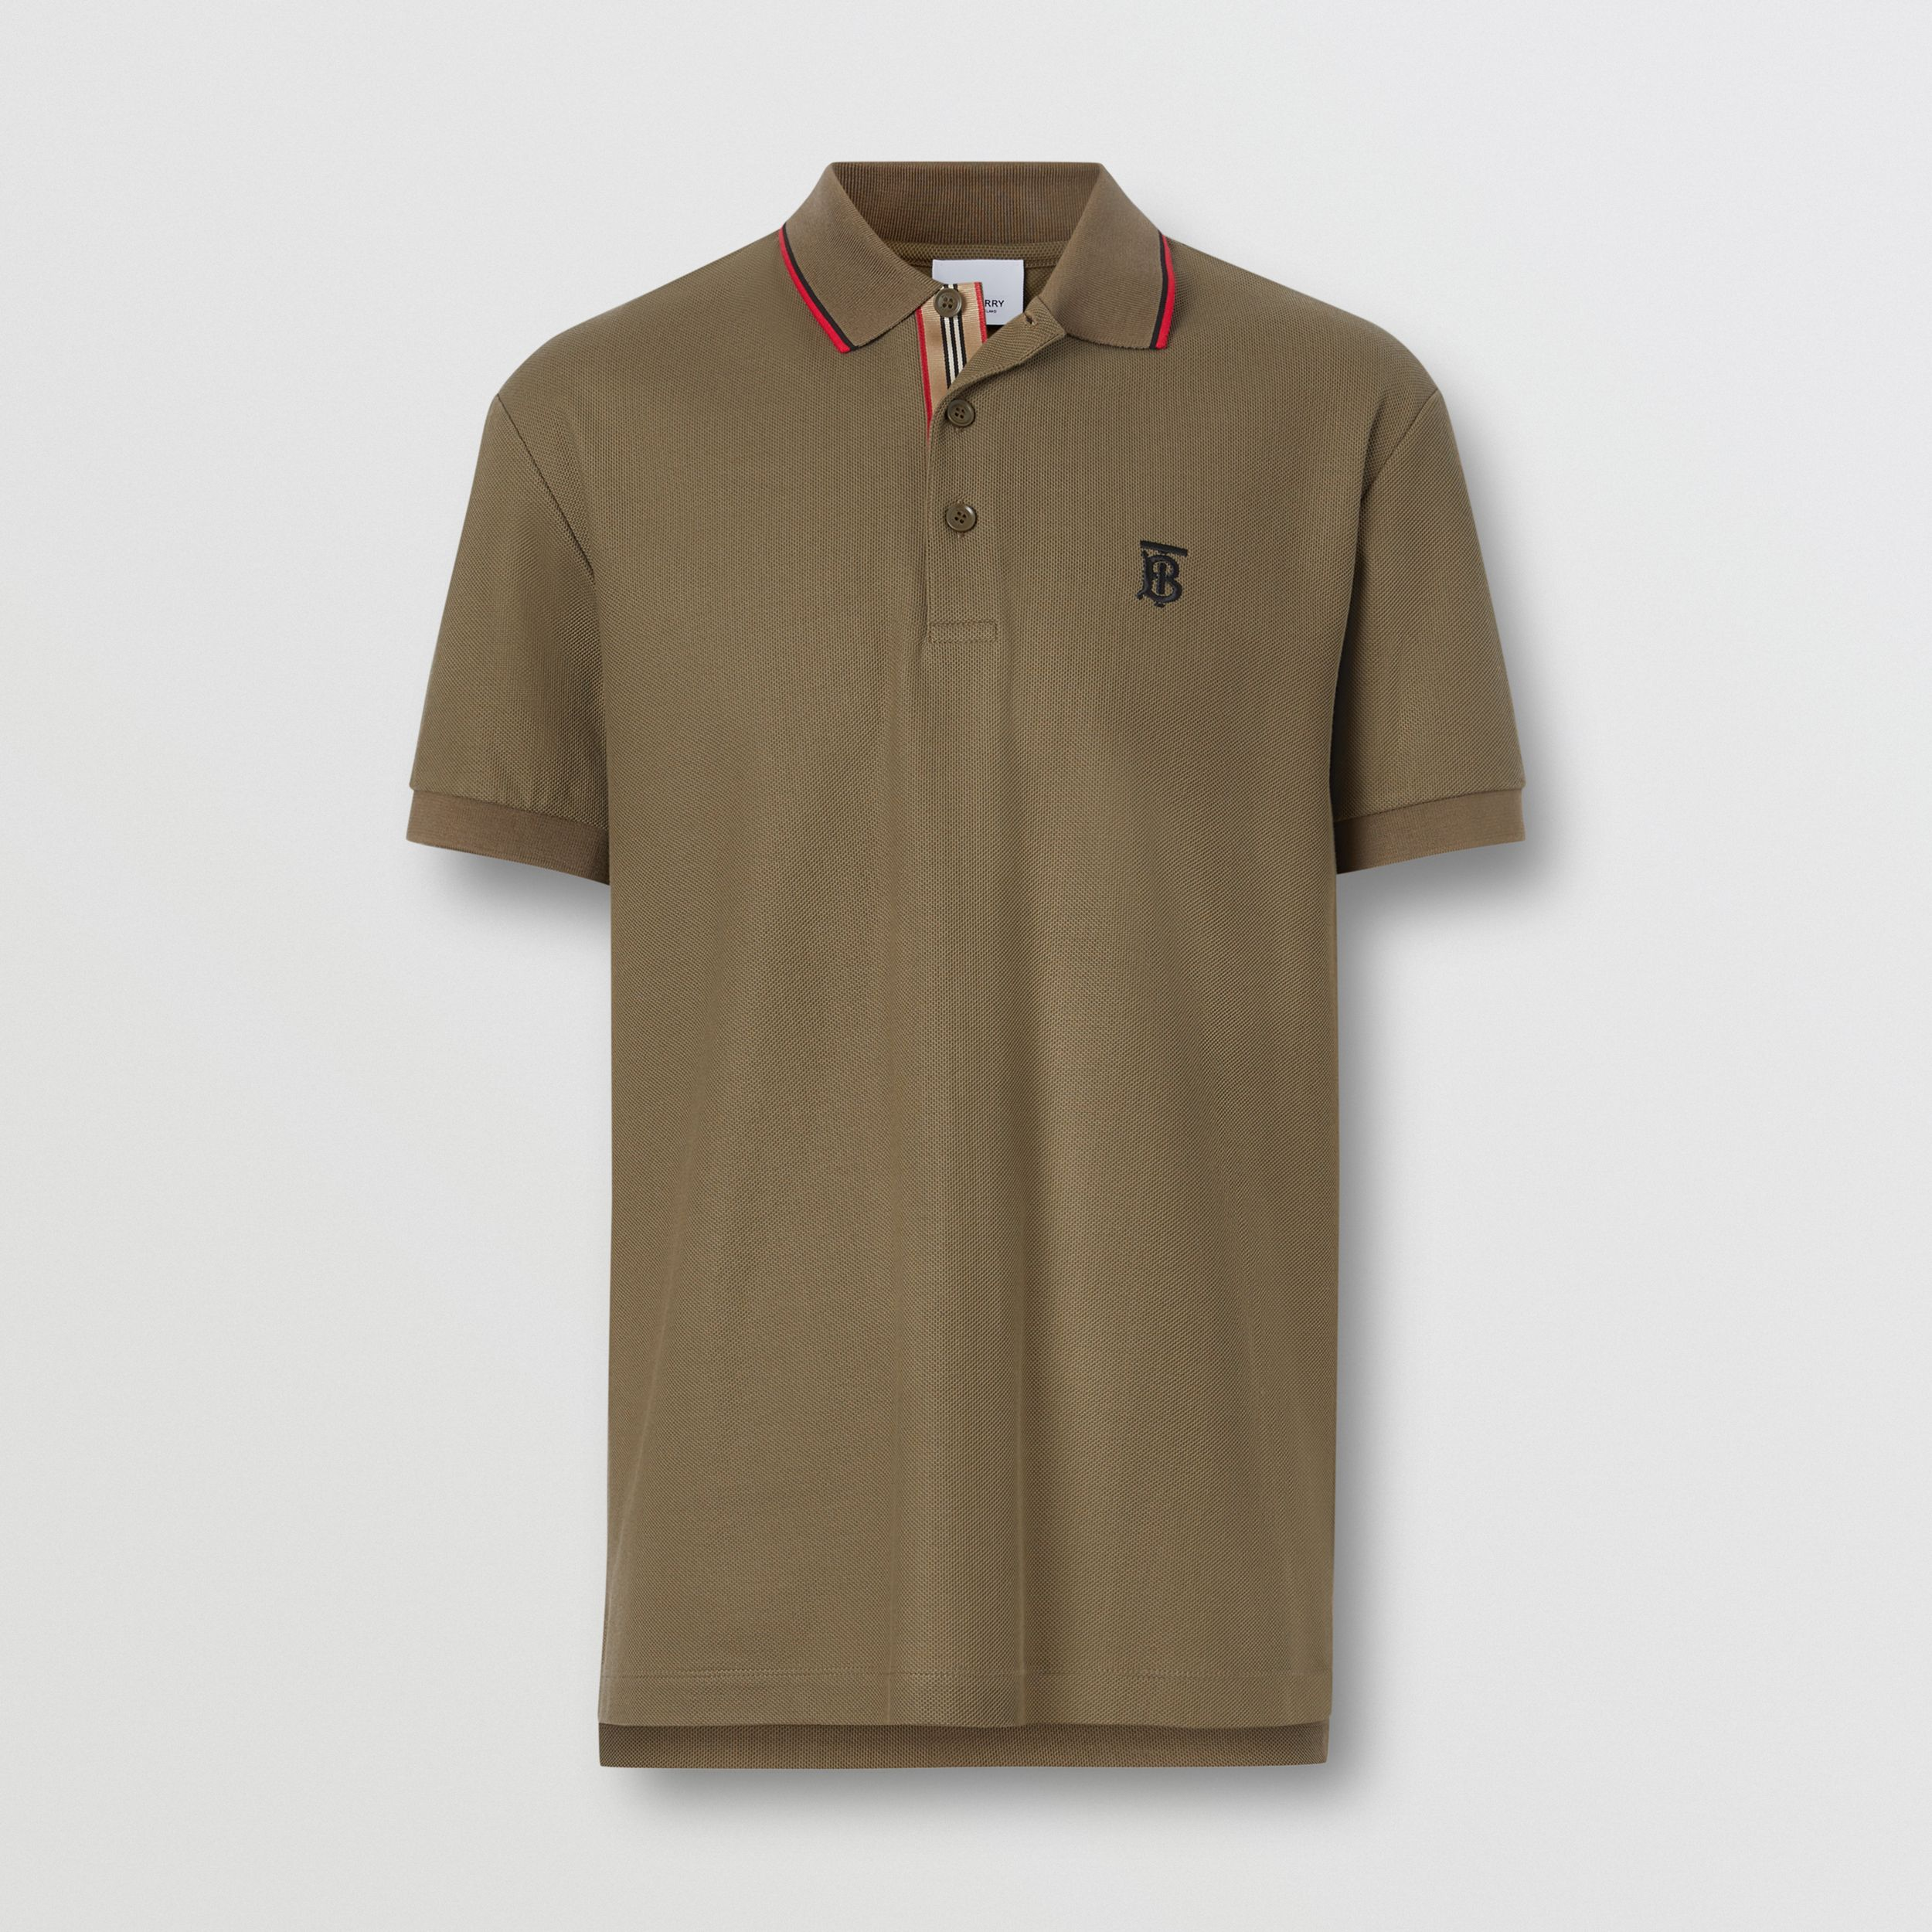 Monogram Motif Cotton Piqué Polo Shirt in Deep Khaki - Men | Burberry - 4